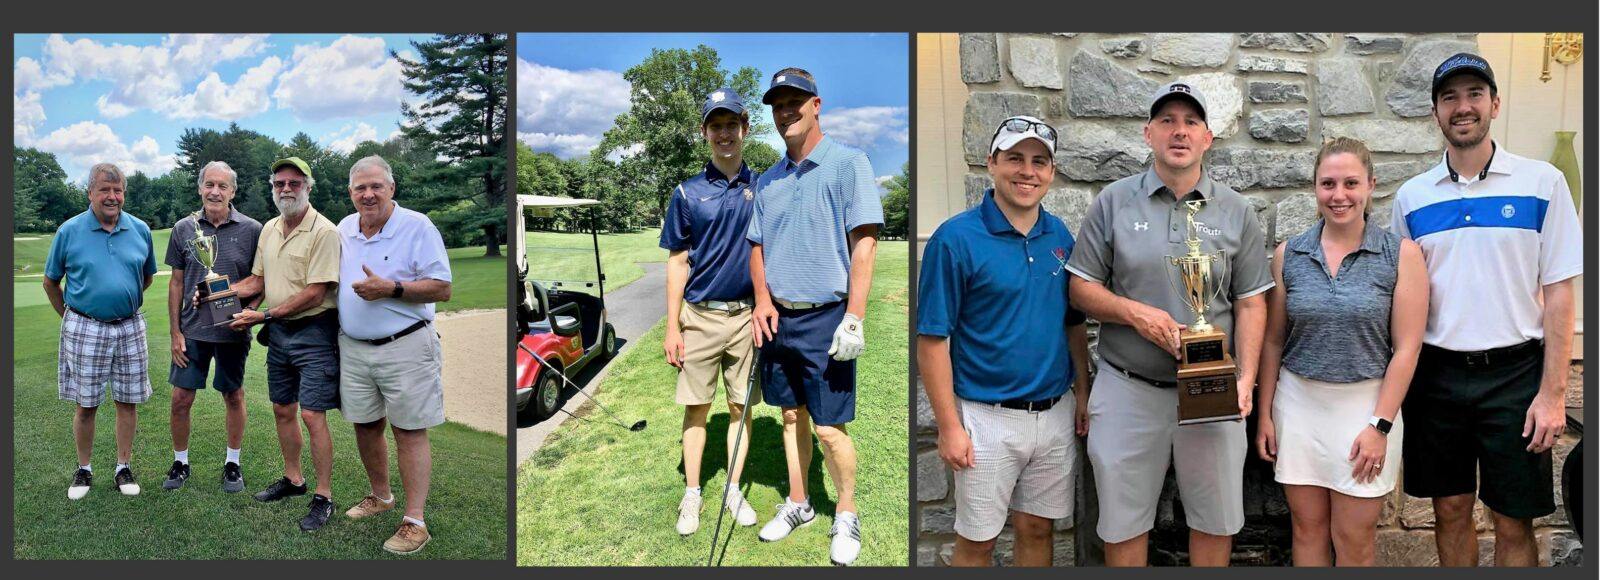 15th Annual Golf Scramble brings out the best, raises nearly $12,000